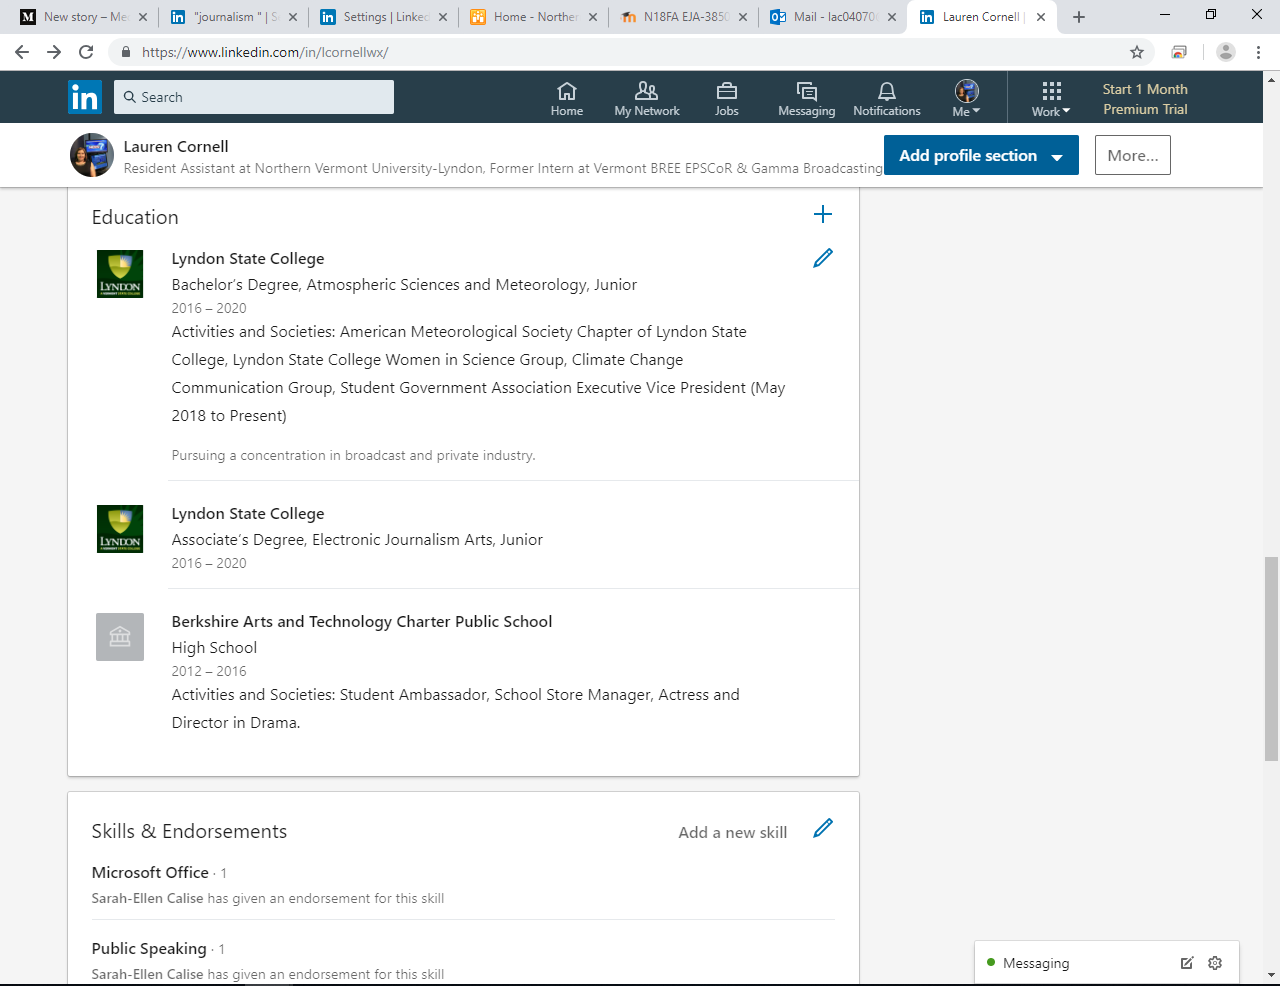 Linking Up With LinkedIn & Using Reddit in Journalism